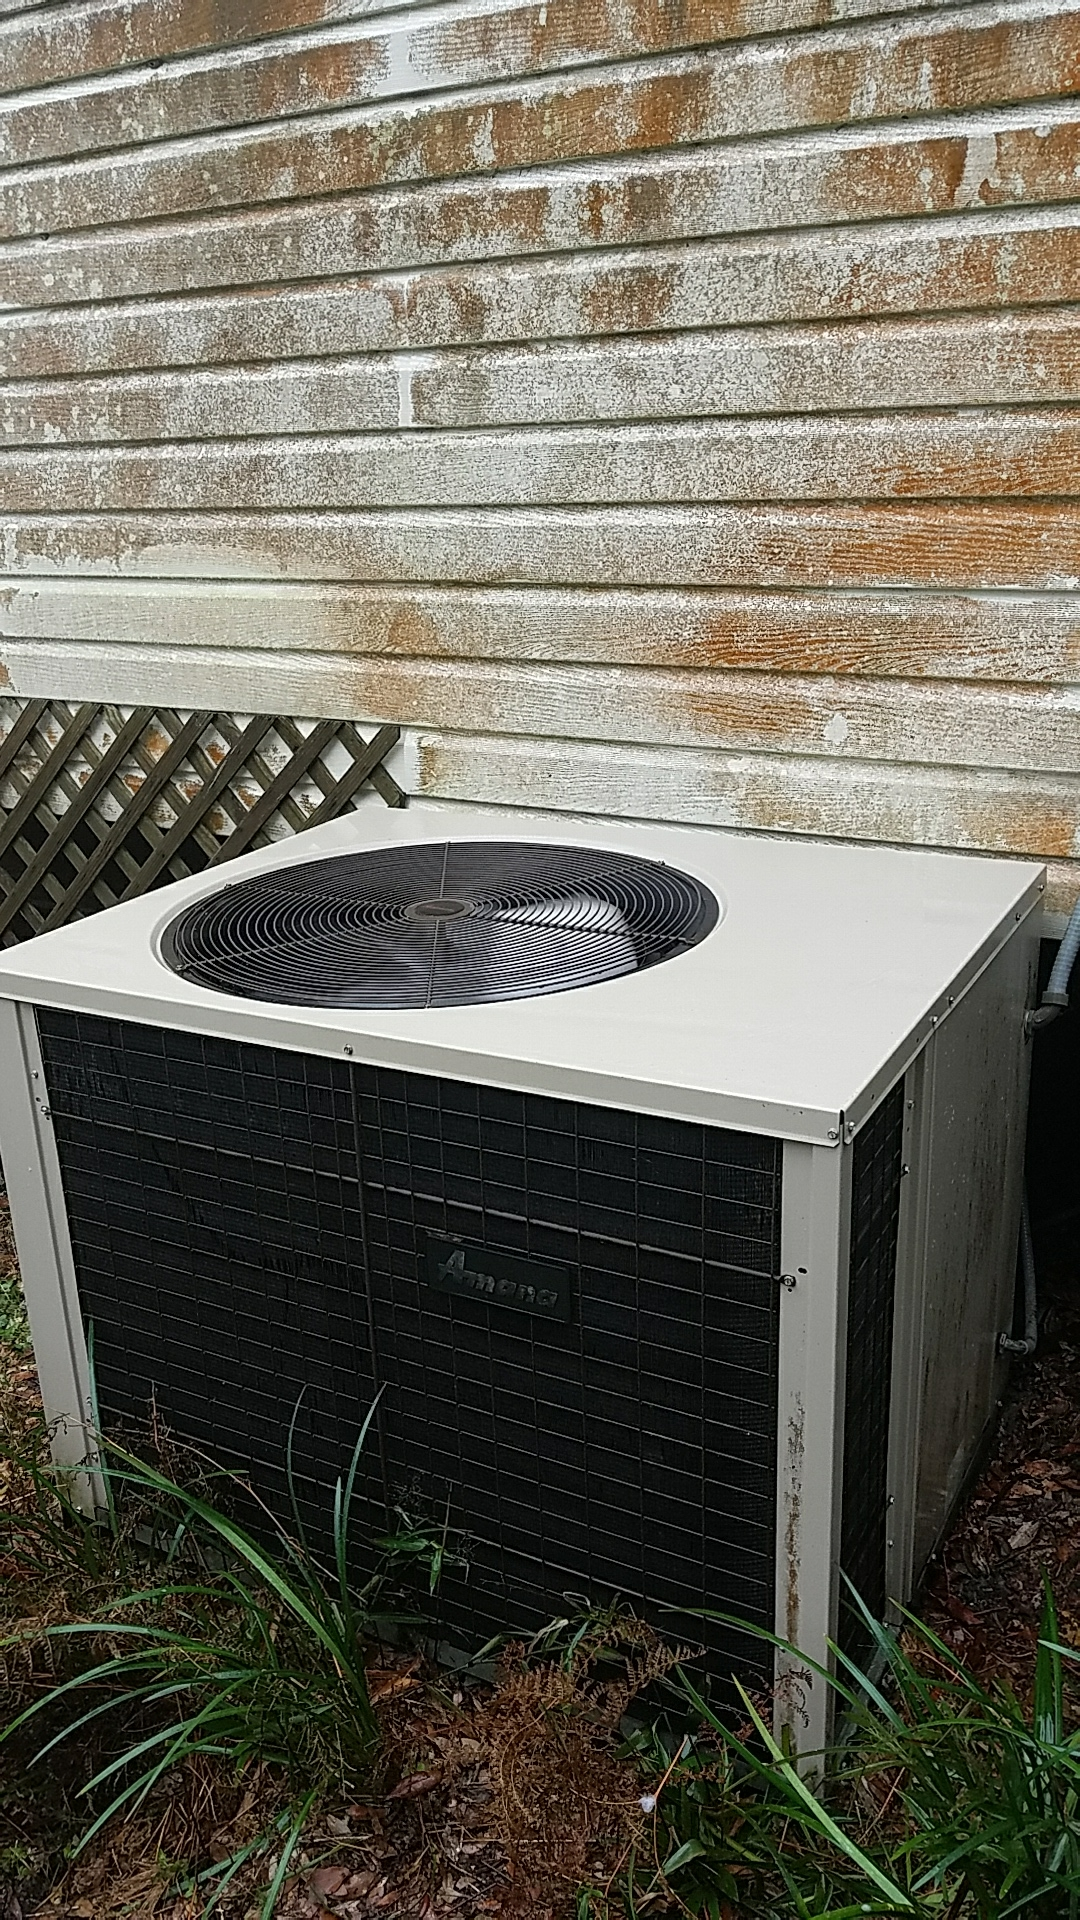 San Mateo, FL - Maintenance on Amana package heat pump system